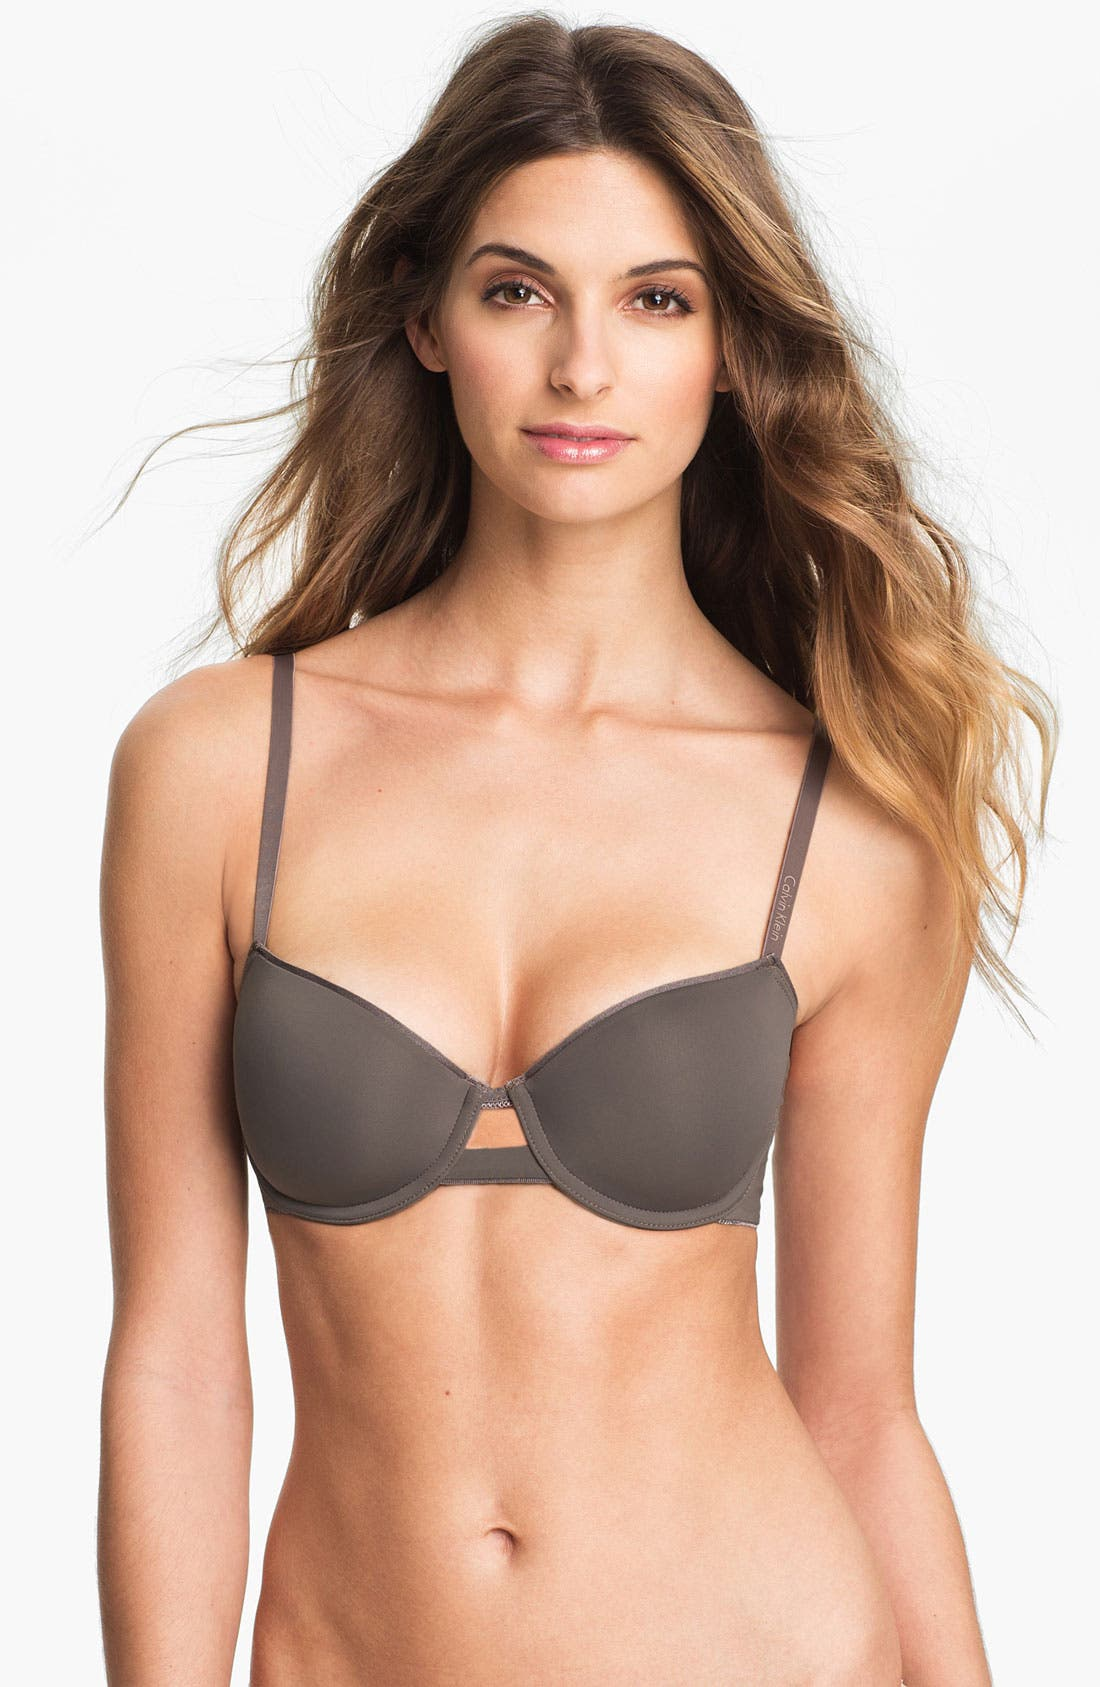 Alternate Image 1 Selected - Calvin Klein 'Seductive Comfort' Underwire Balconette Bra